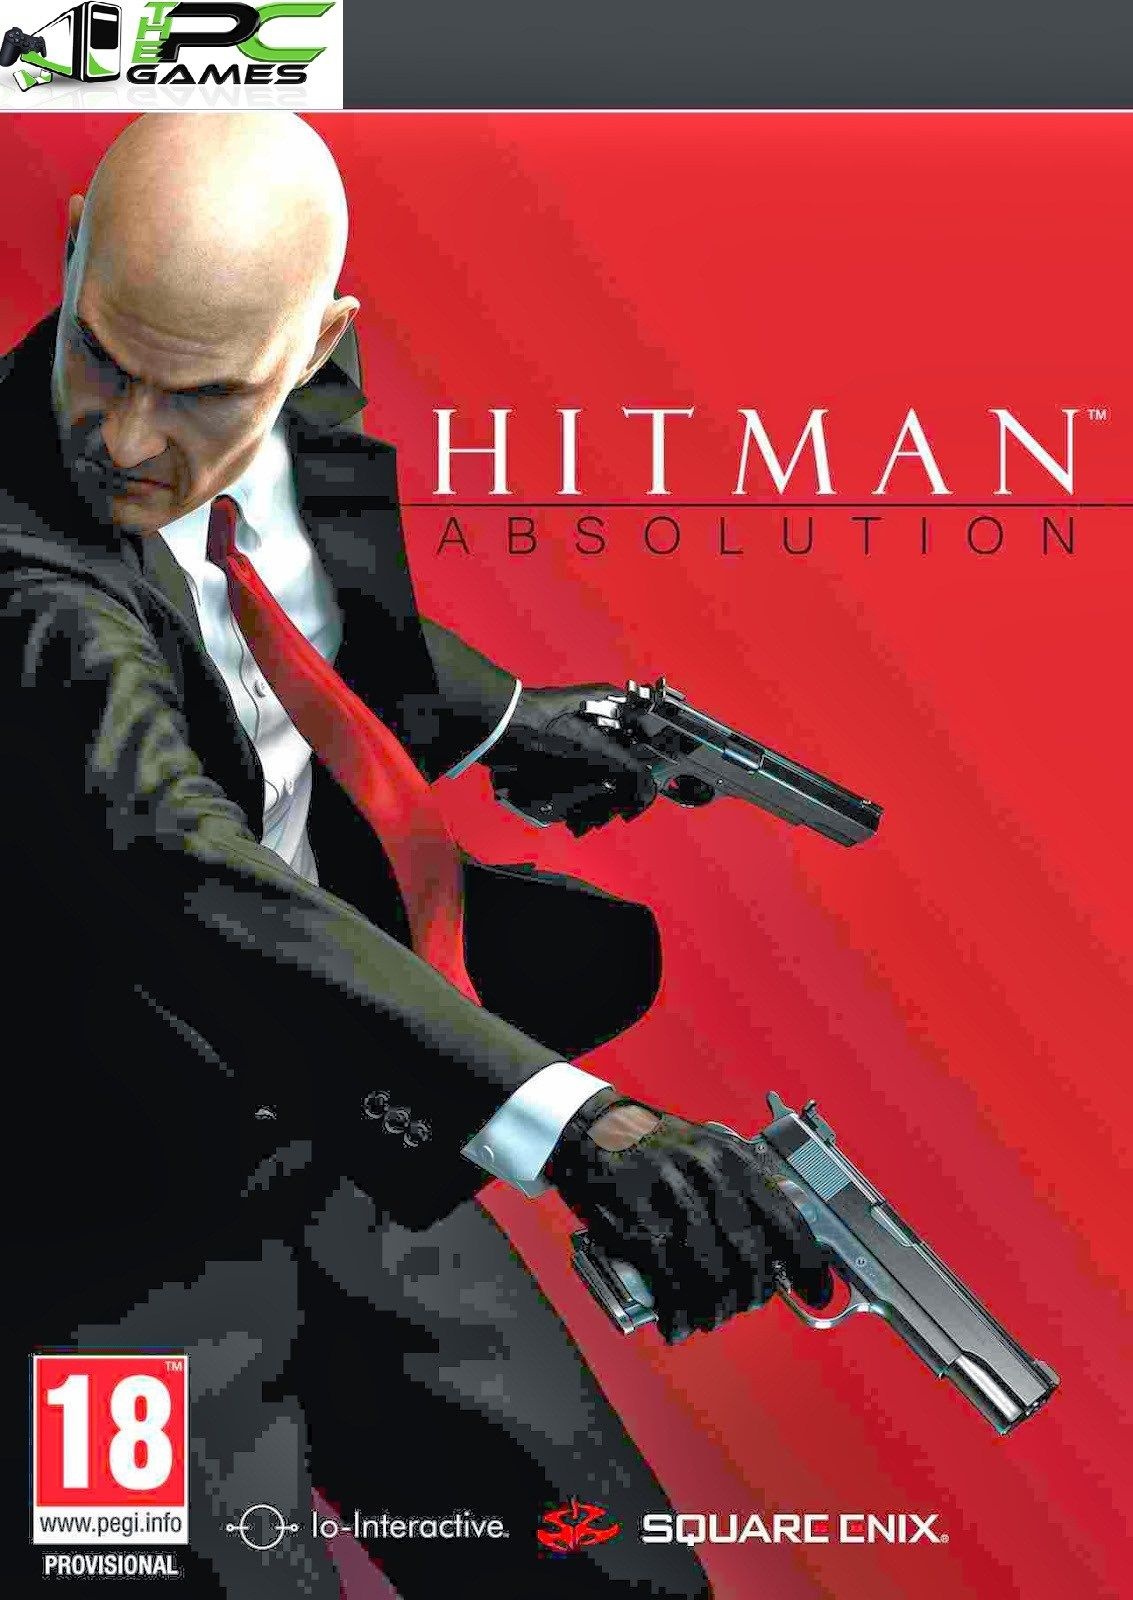 free download hitman blood money game full version for pc